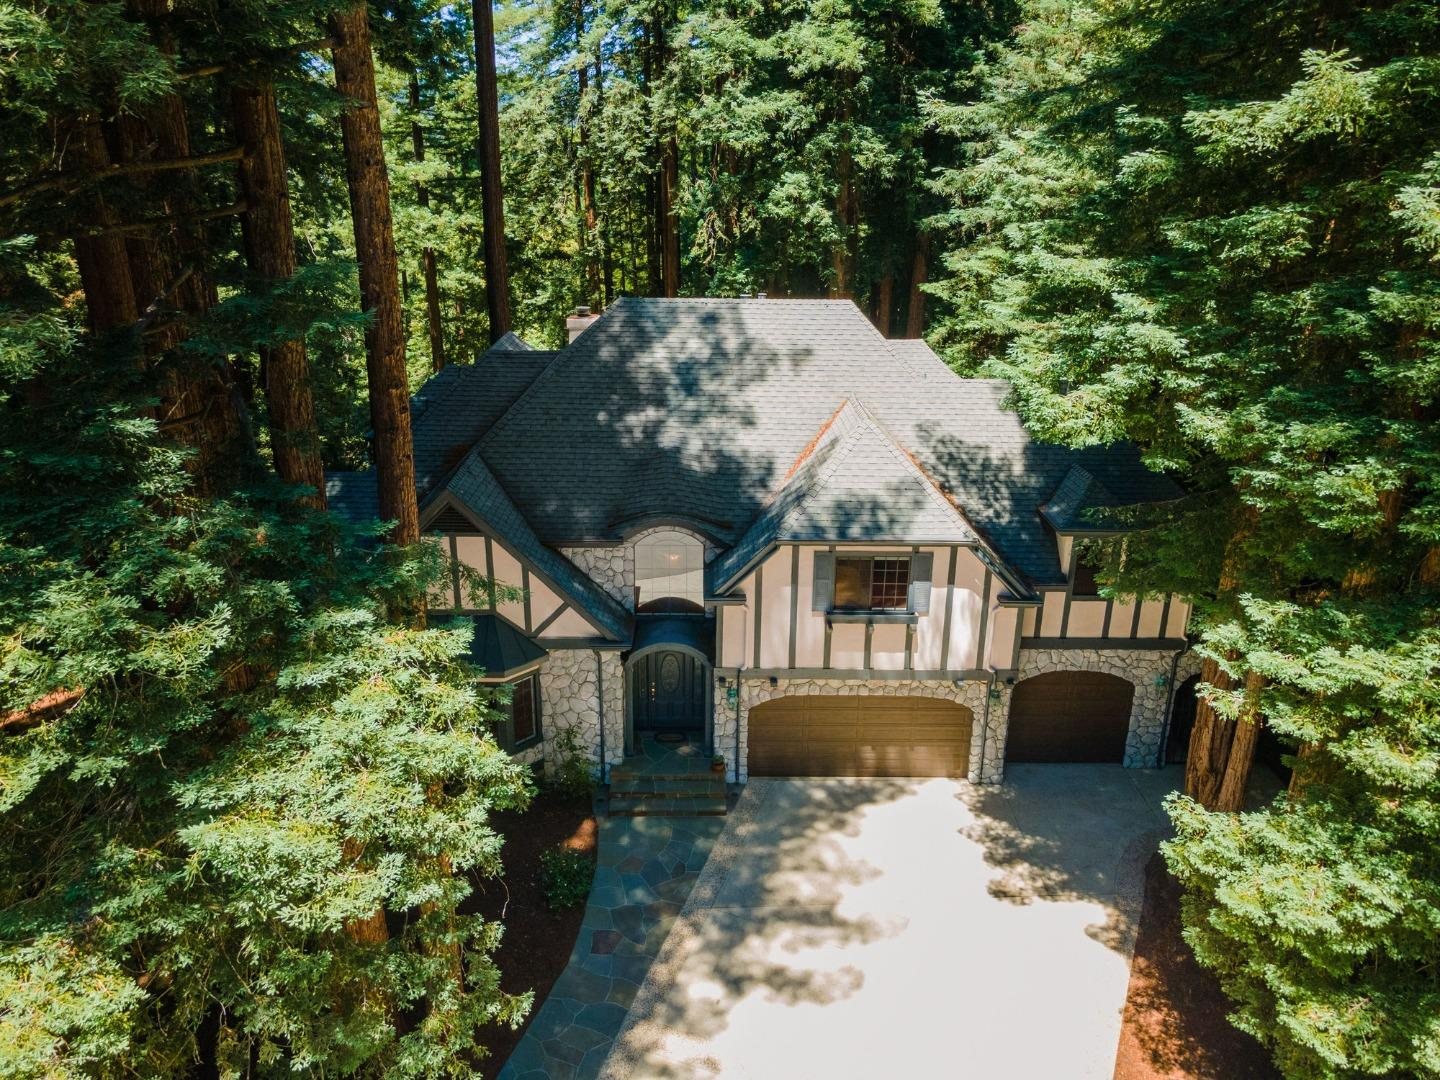 This traditional 4-BR, 4.5 BA Country English-style home is surrounded by redwoods & crafted w/high-quality materials & architectural touches throughout, such as hardwood floors, high ceilings, crown molding, skylights, & custom tile work. The spacious LR is anchored by a dramatic fireplace w/custom carved wood mantel & marble hearth. The huge, custom kitchen has plenty of storage, ample room for the family to gather, & an angled island that adds counter space, bar seating, & an extra sink. A formal dining room w/an arched alcove is adjacent to the kitchen. The main level includes a carpeted master suite w/two master baths, corner office, half bath, & laundry room. A graceful wood staircase curves toward the second story, to three more distinctive bedrooms, bonus room, interspersed w/two bathrooms. Spacious enough for a large family to live w/comfort & privacy, near great schools & Scotts Valleys shops & restaurants, this beautiful home is ready to host a lifetime of happy memories.